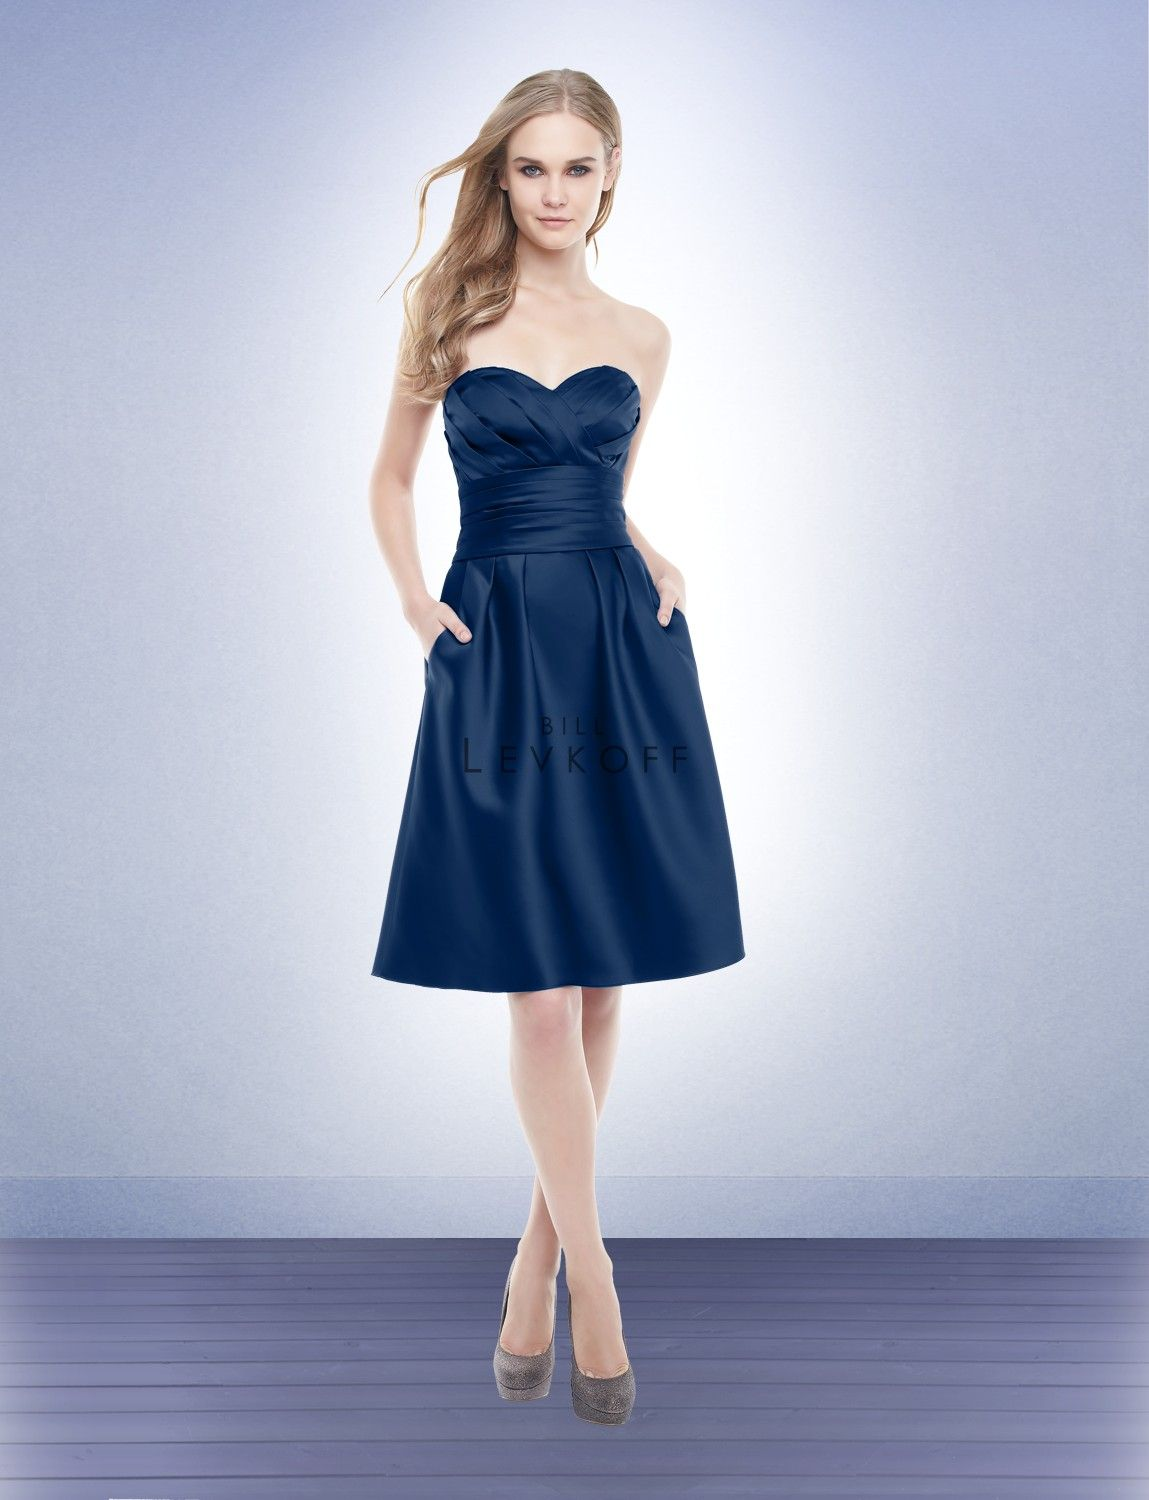 Navy is this years color bridesmaid dress style 172 bill levkoff bridesmaid dress style 172 bill levkoff we carry ombrellifo Image collections